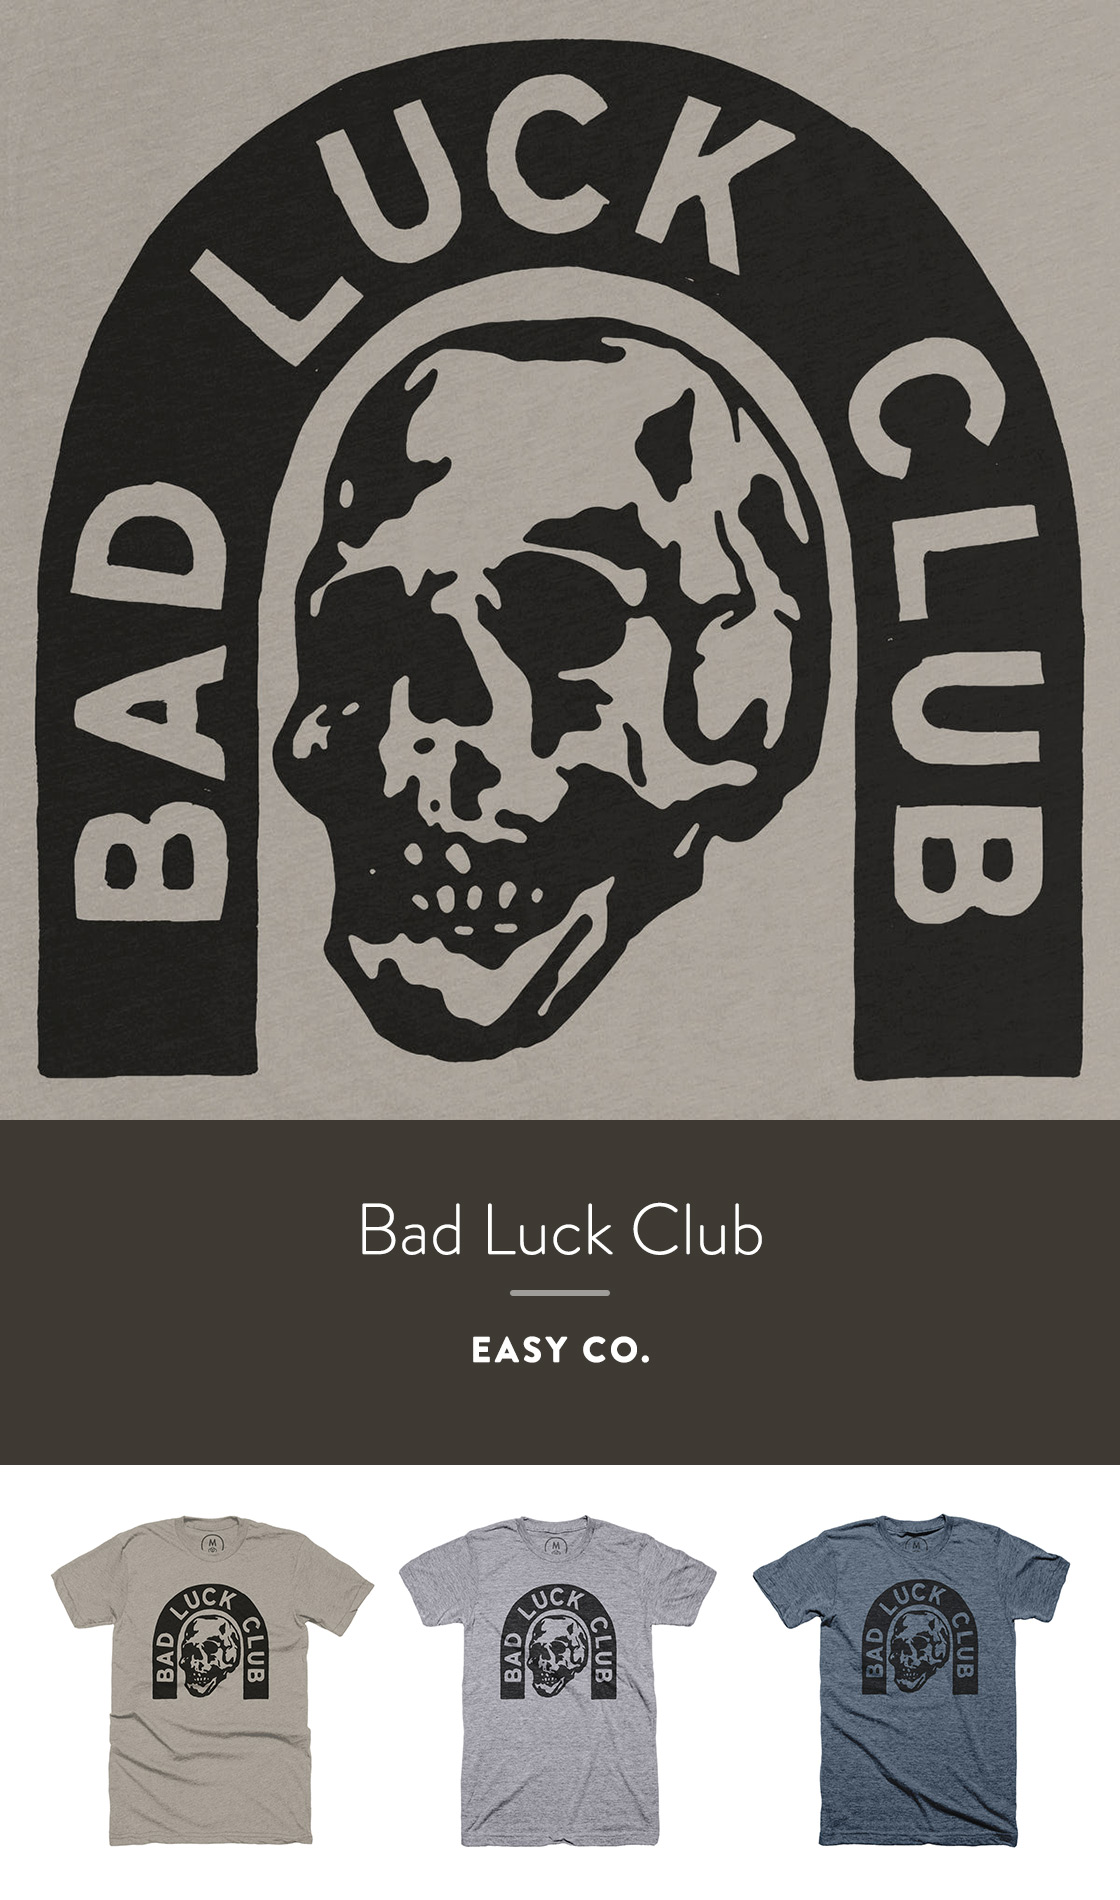 Bad Luck Club by Easy Co.